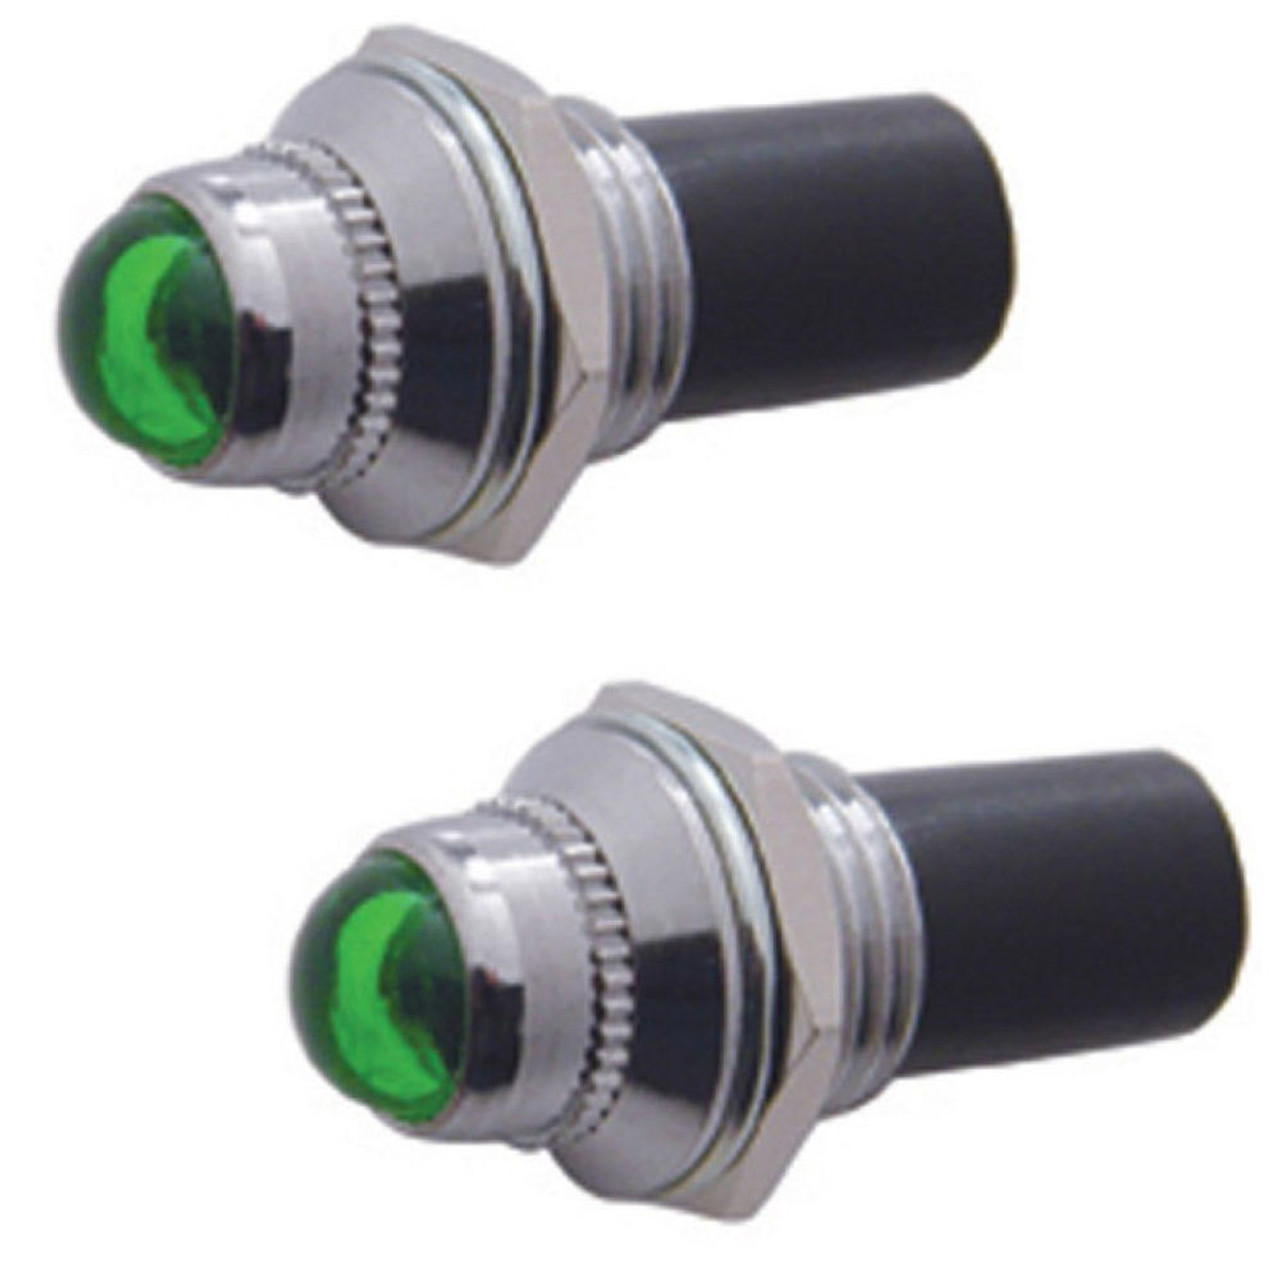 """2 Green Mini Pilot  Lights - Incandescent, Fits 3/8"""" Dash Hole, Sold As Pair"""